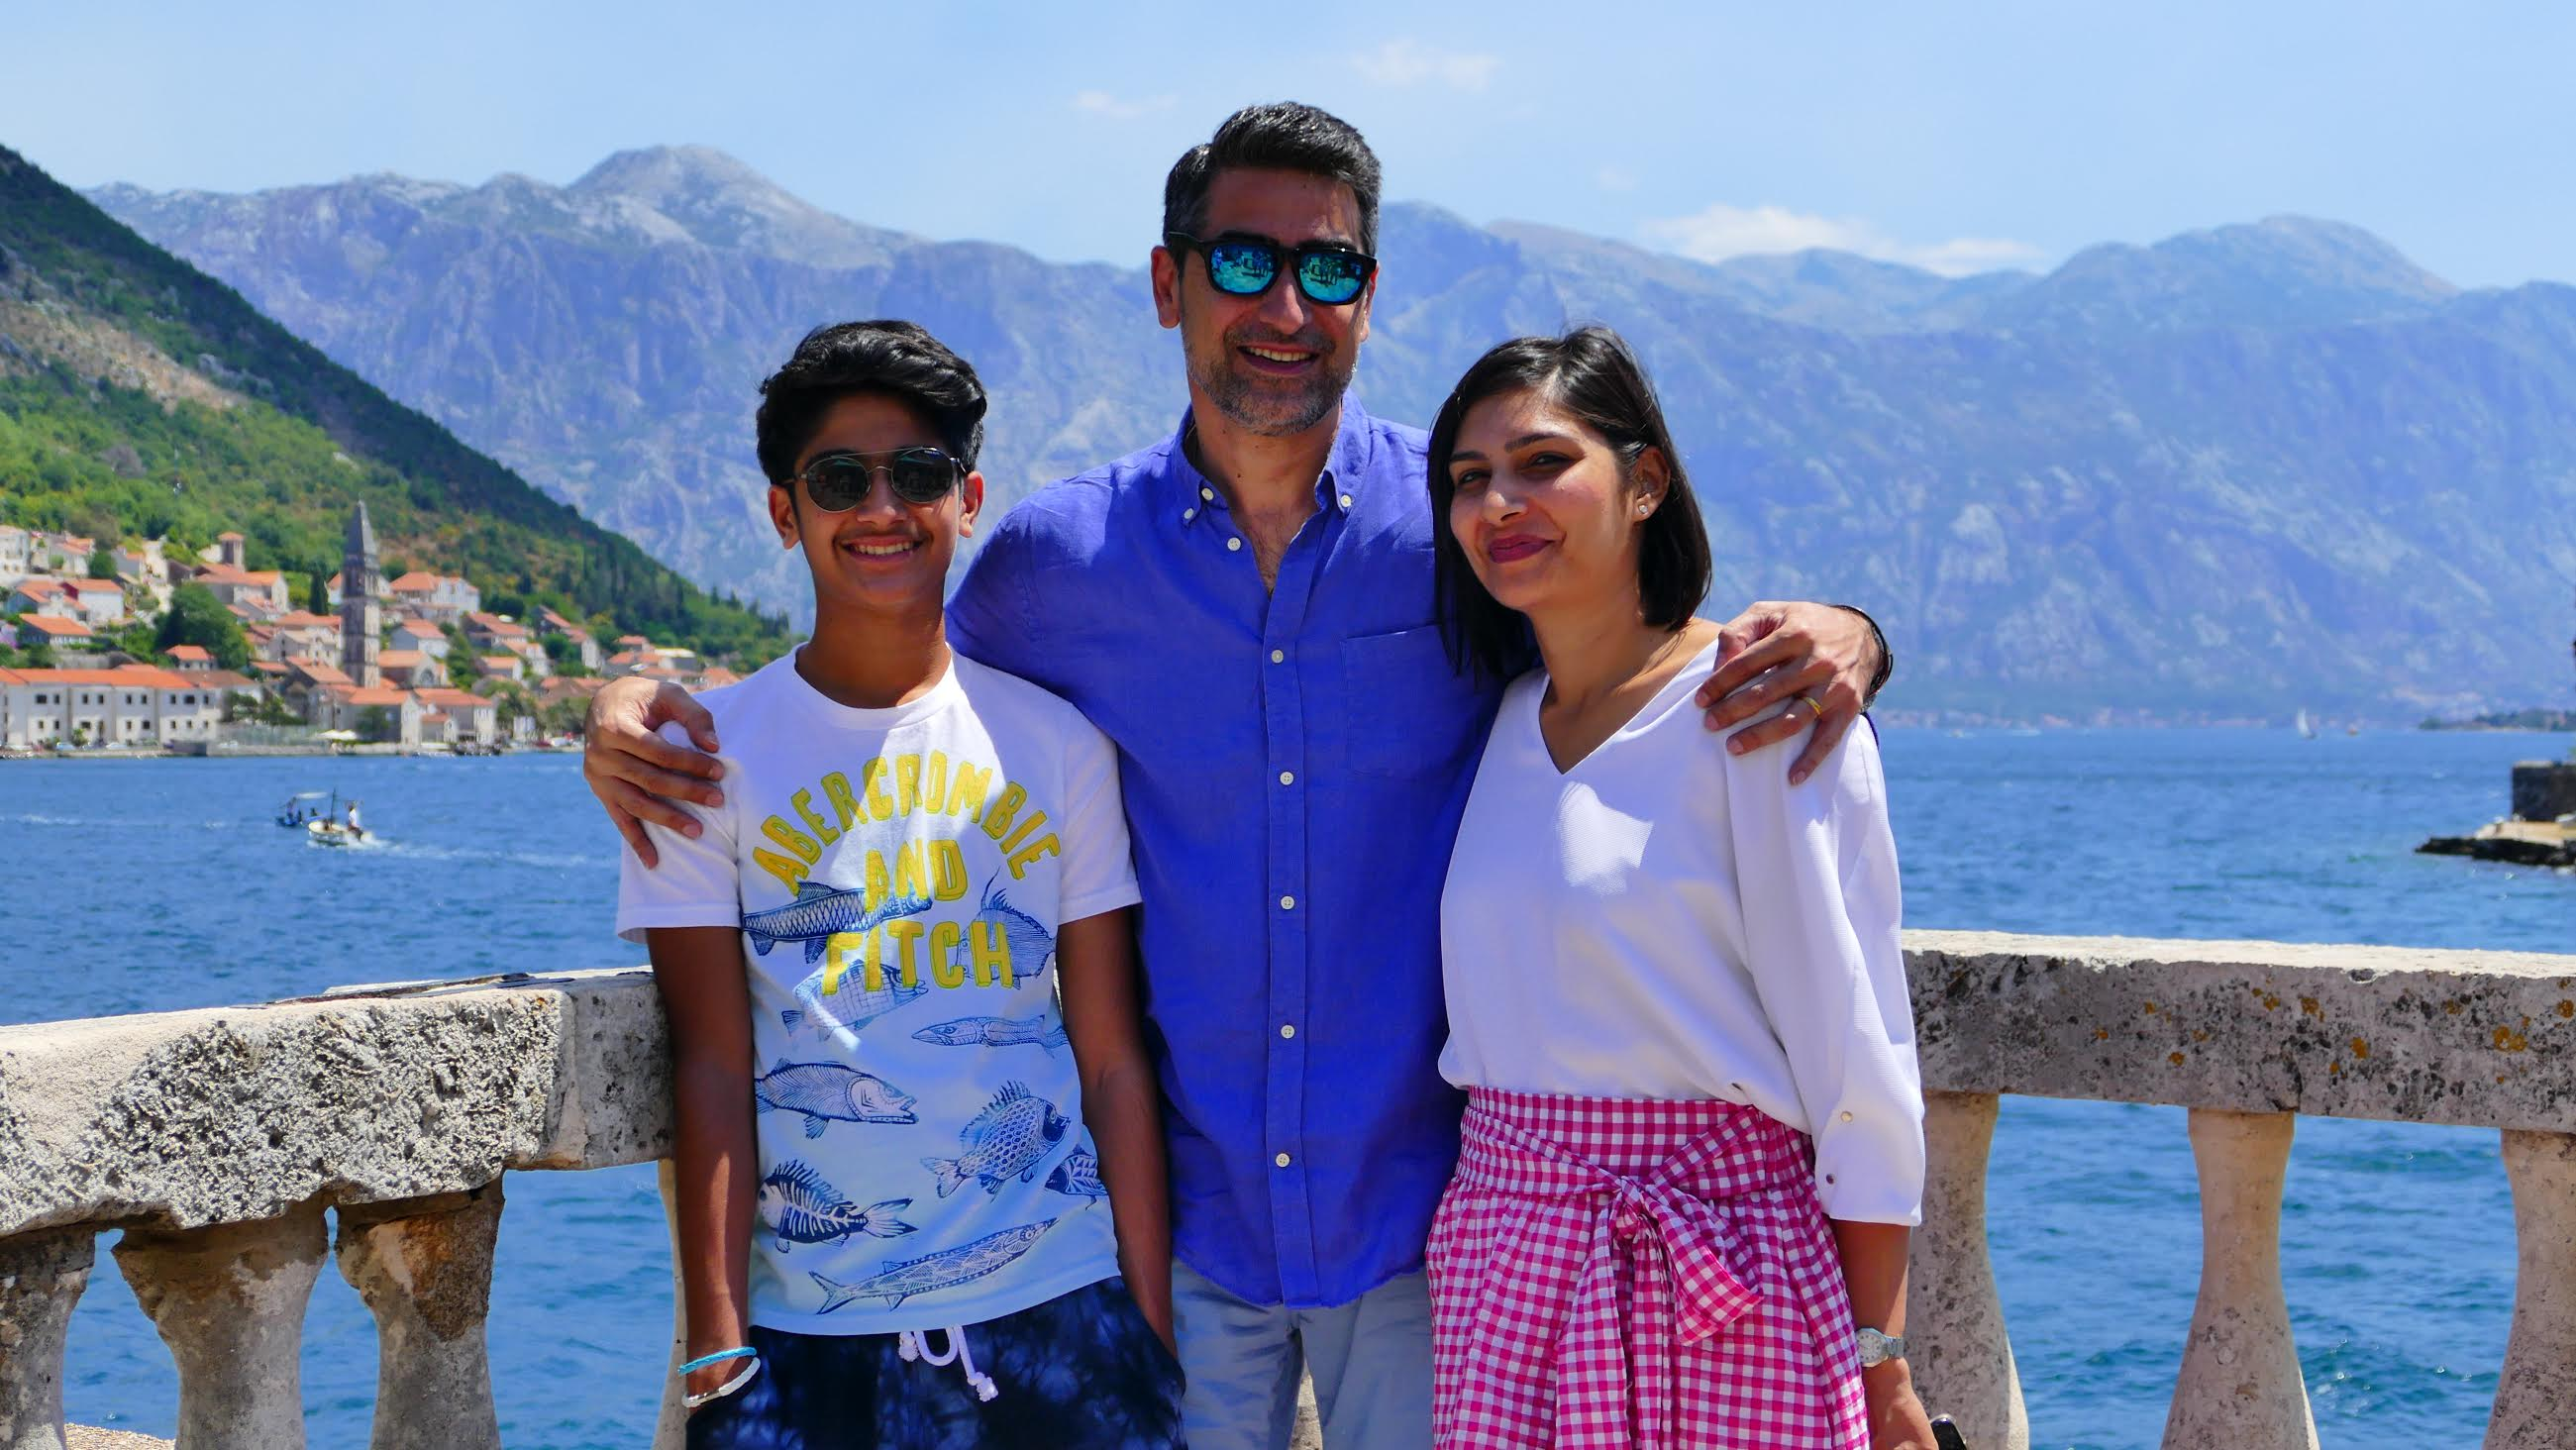 Paras Sharma, Senior Vice President & General Manager (SEA) and Head of Digital Media (Asia) Viacom International Media Networks; with his family here. Photo courtesy: Paras Sharma